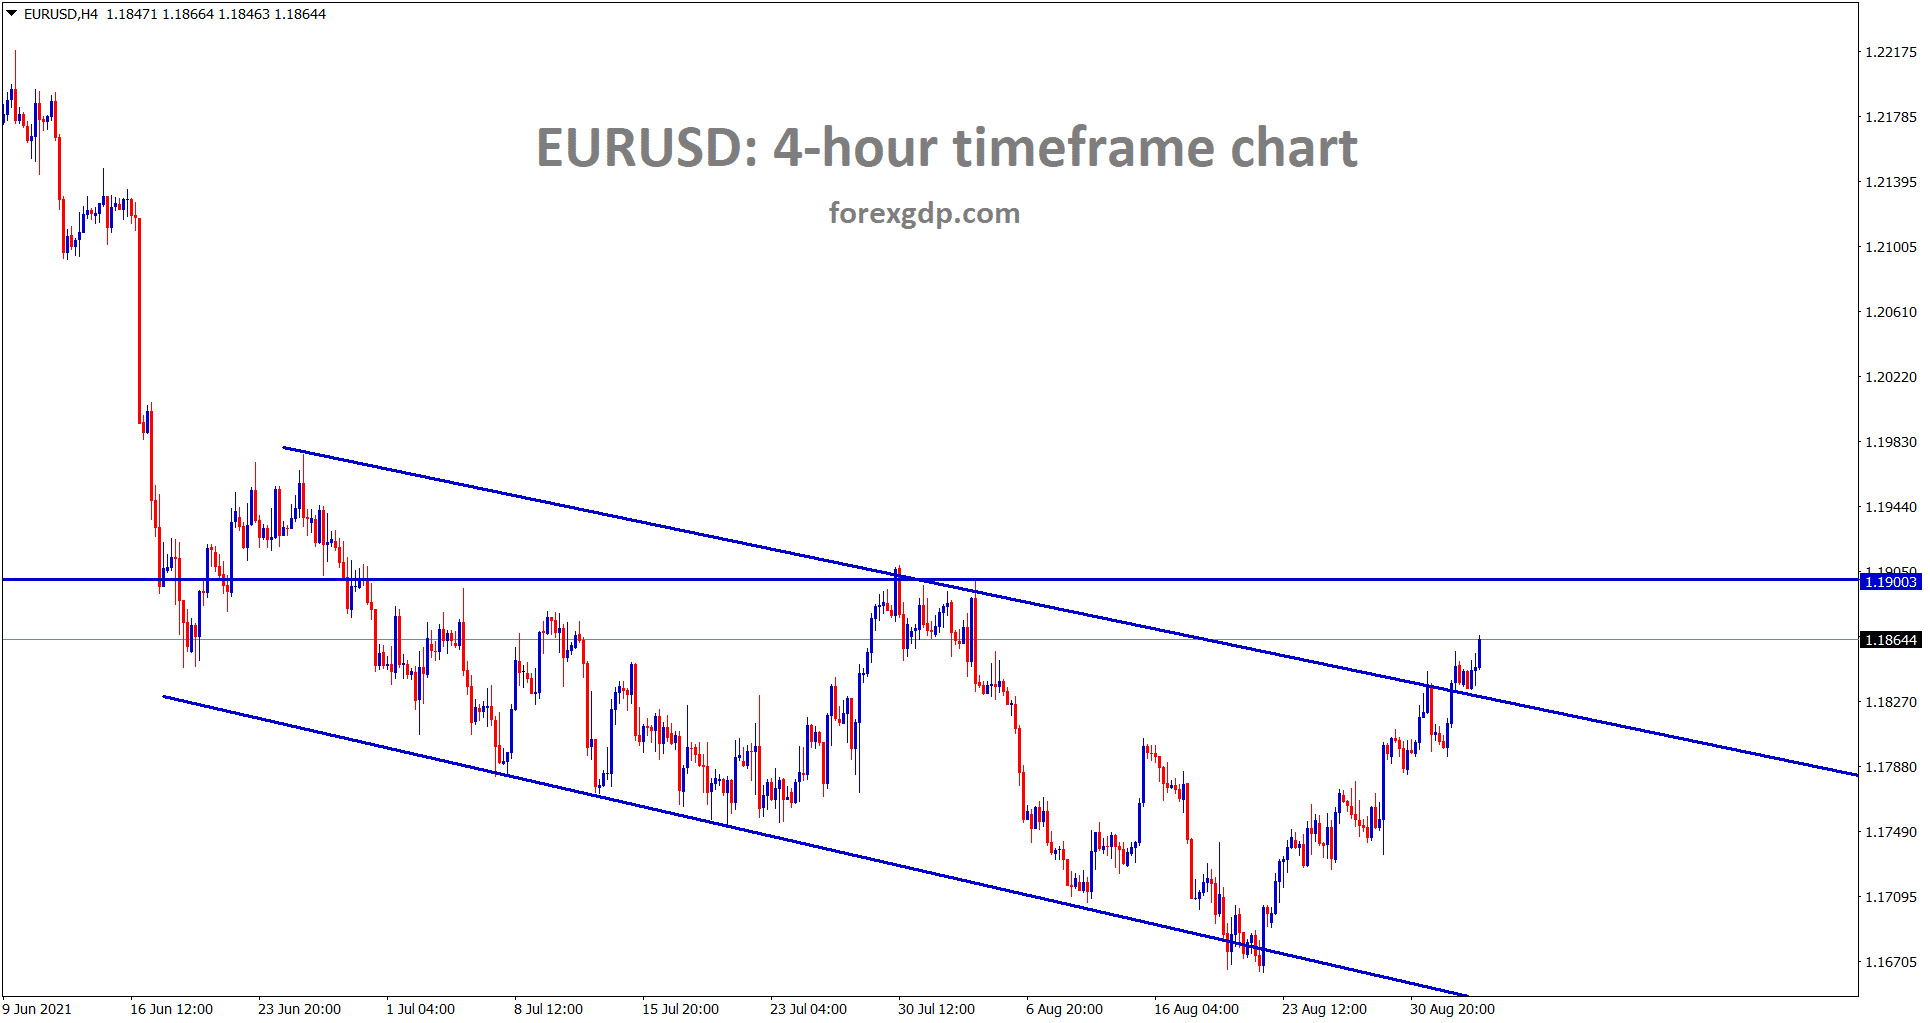 EURUSD has broken the top of the descending channel range and its going to reach the horizontal resistance area